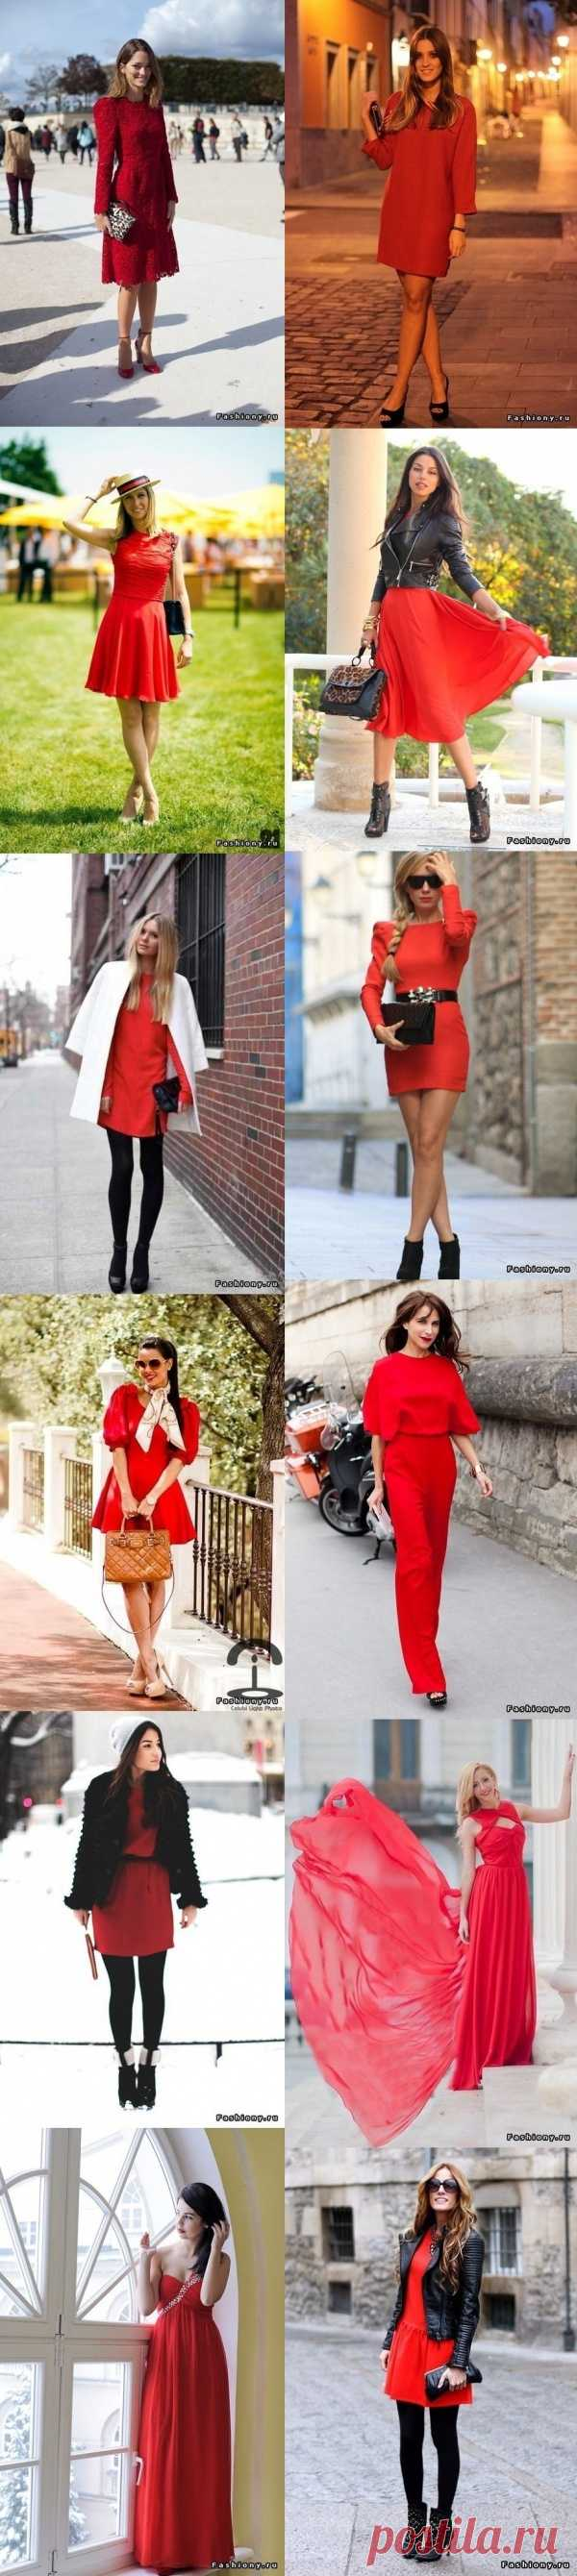 What does each woman of fashion have to have in clothes? - Red dress!